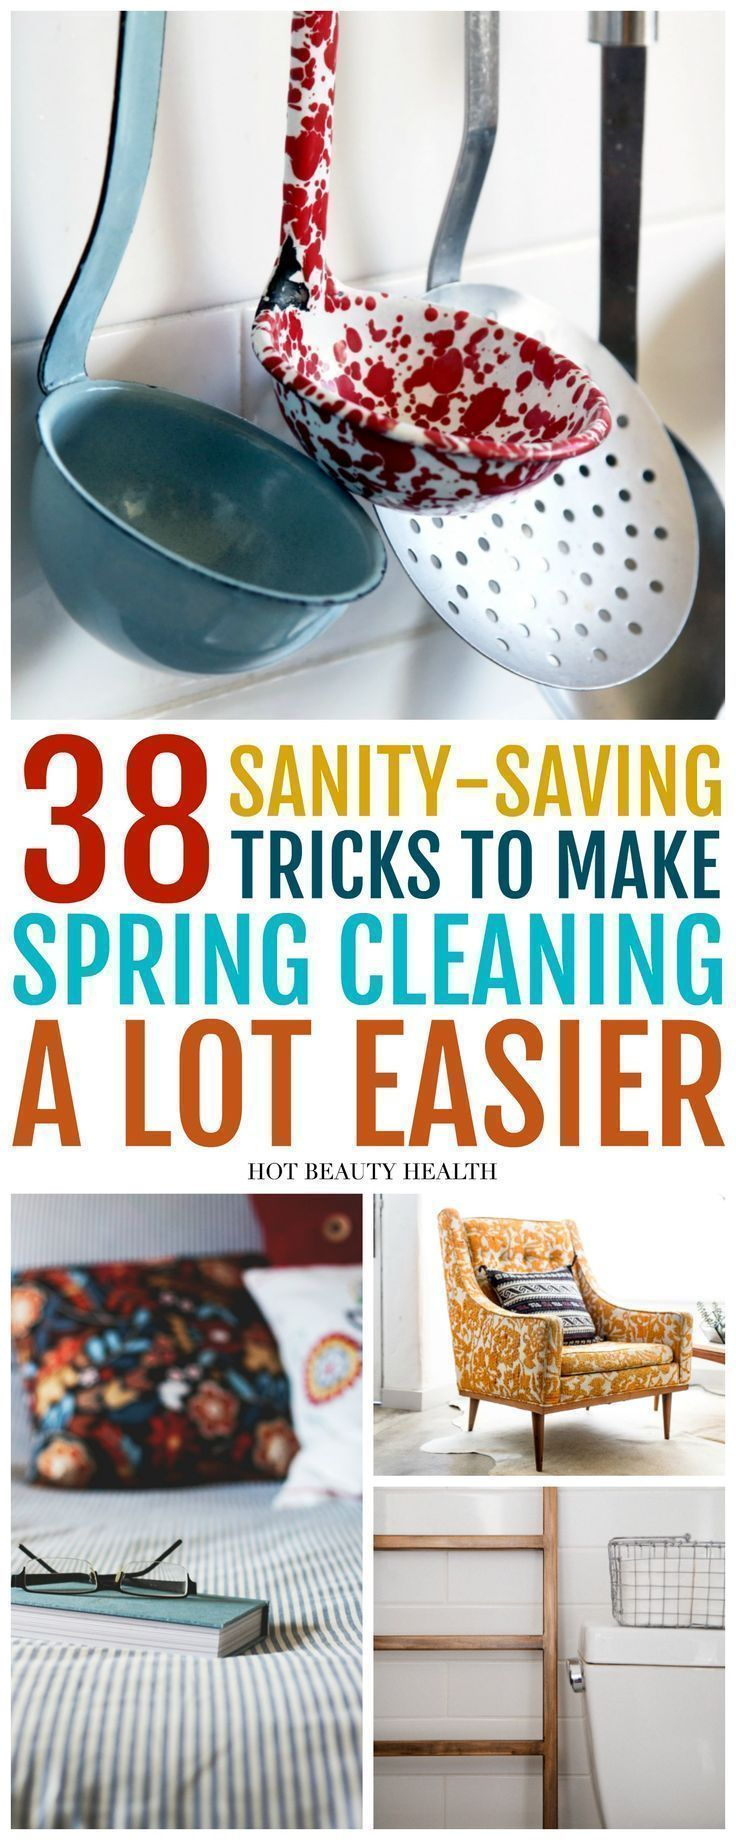 These diy spring cleaning tips and tricks are more of a checklist